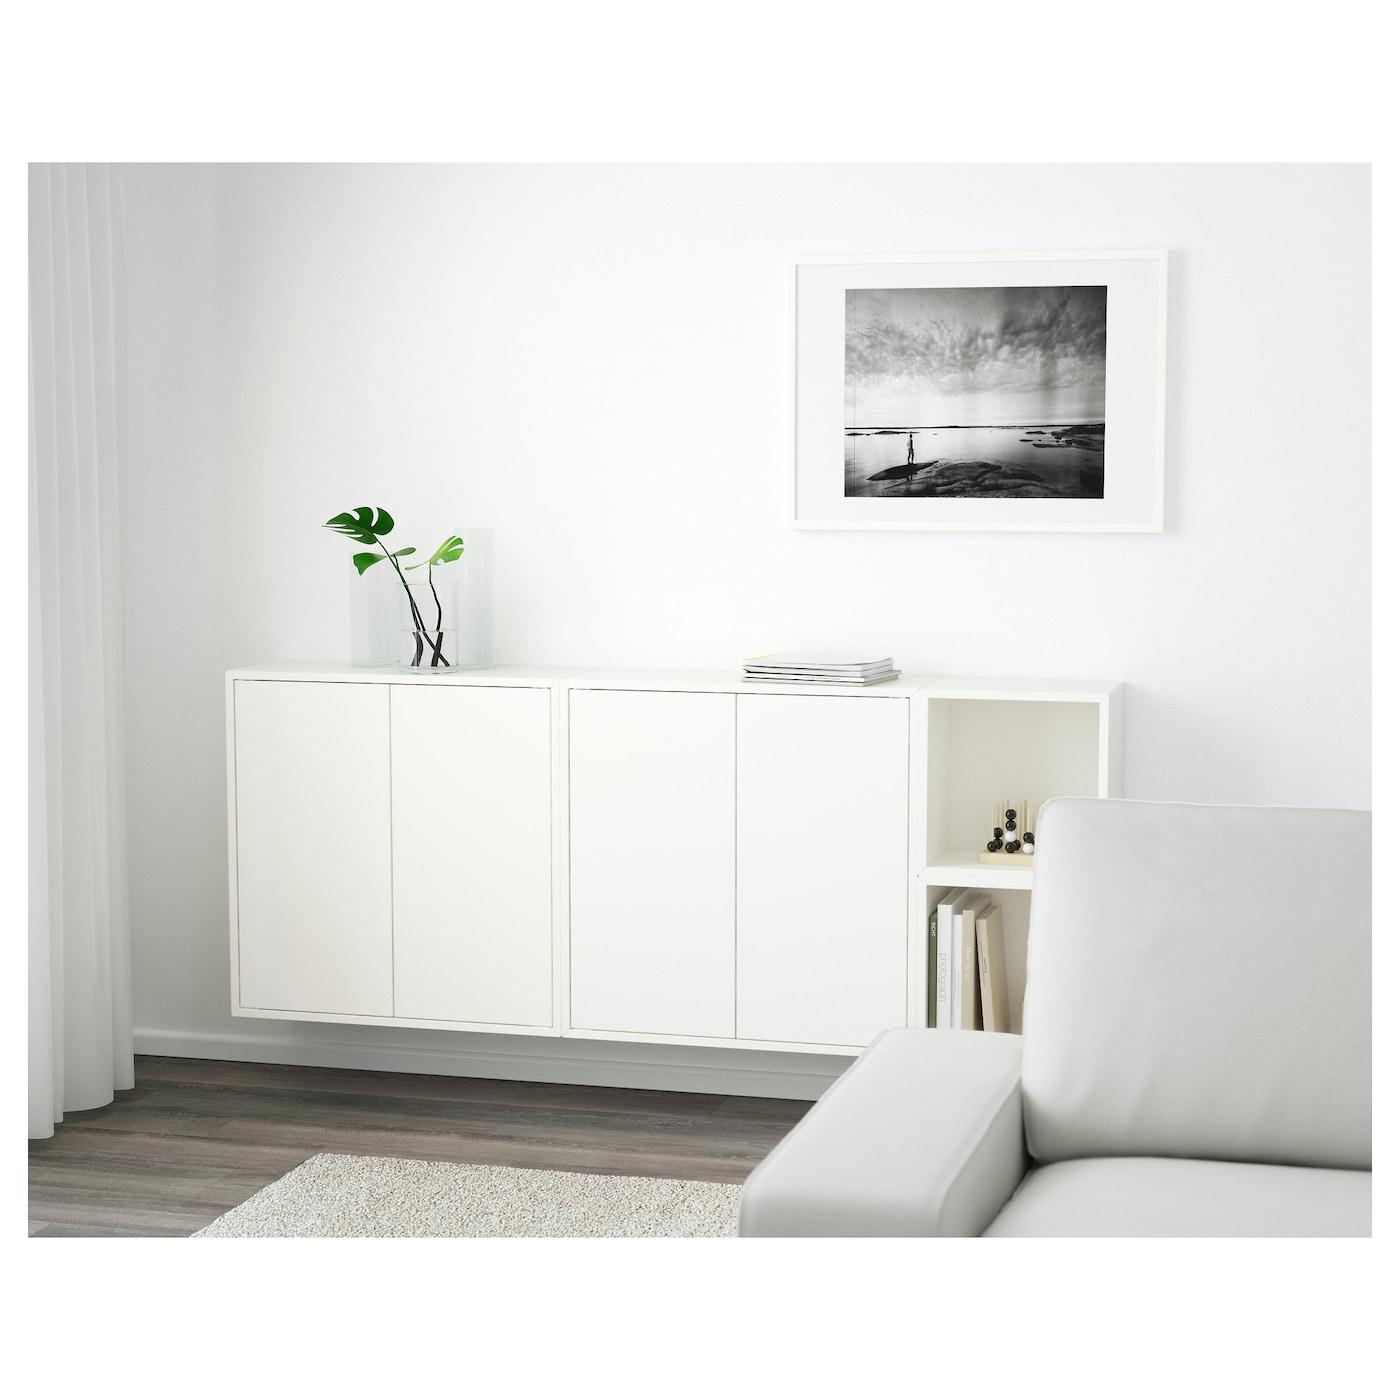 EKET Wall-mounted cabinet combination - white 10x10x10 cm